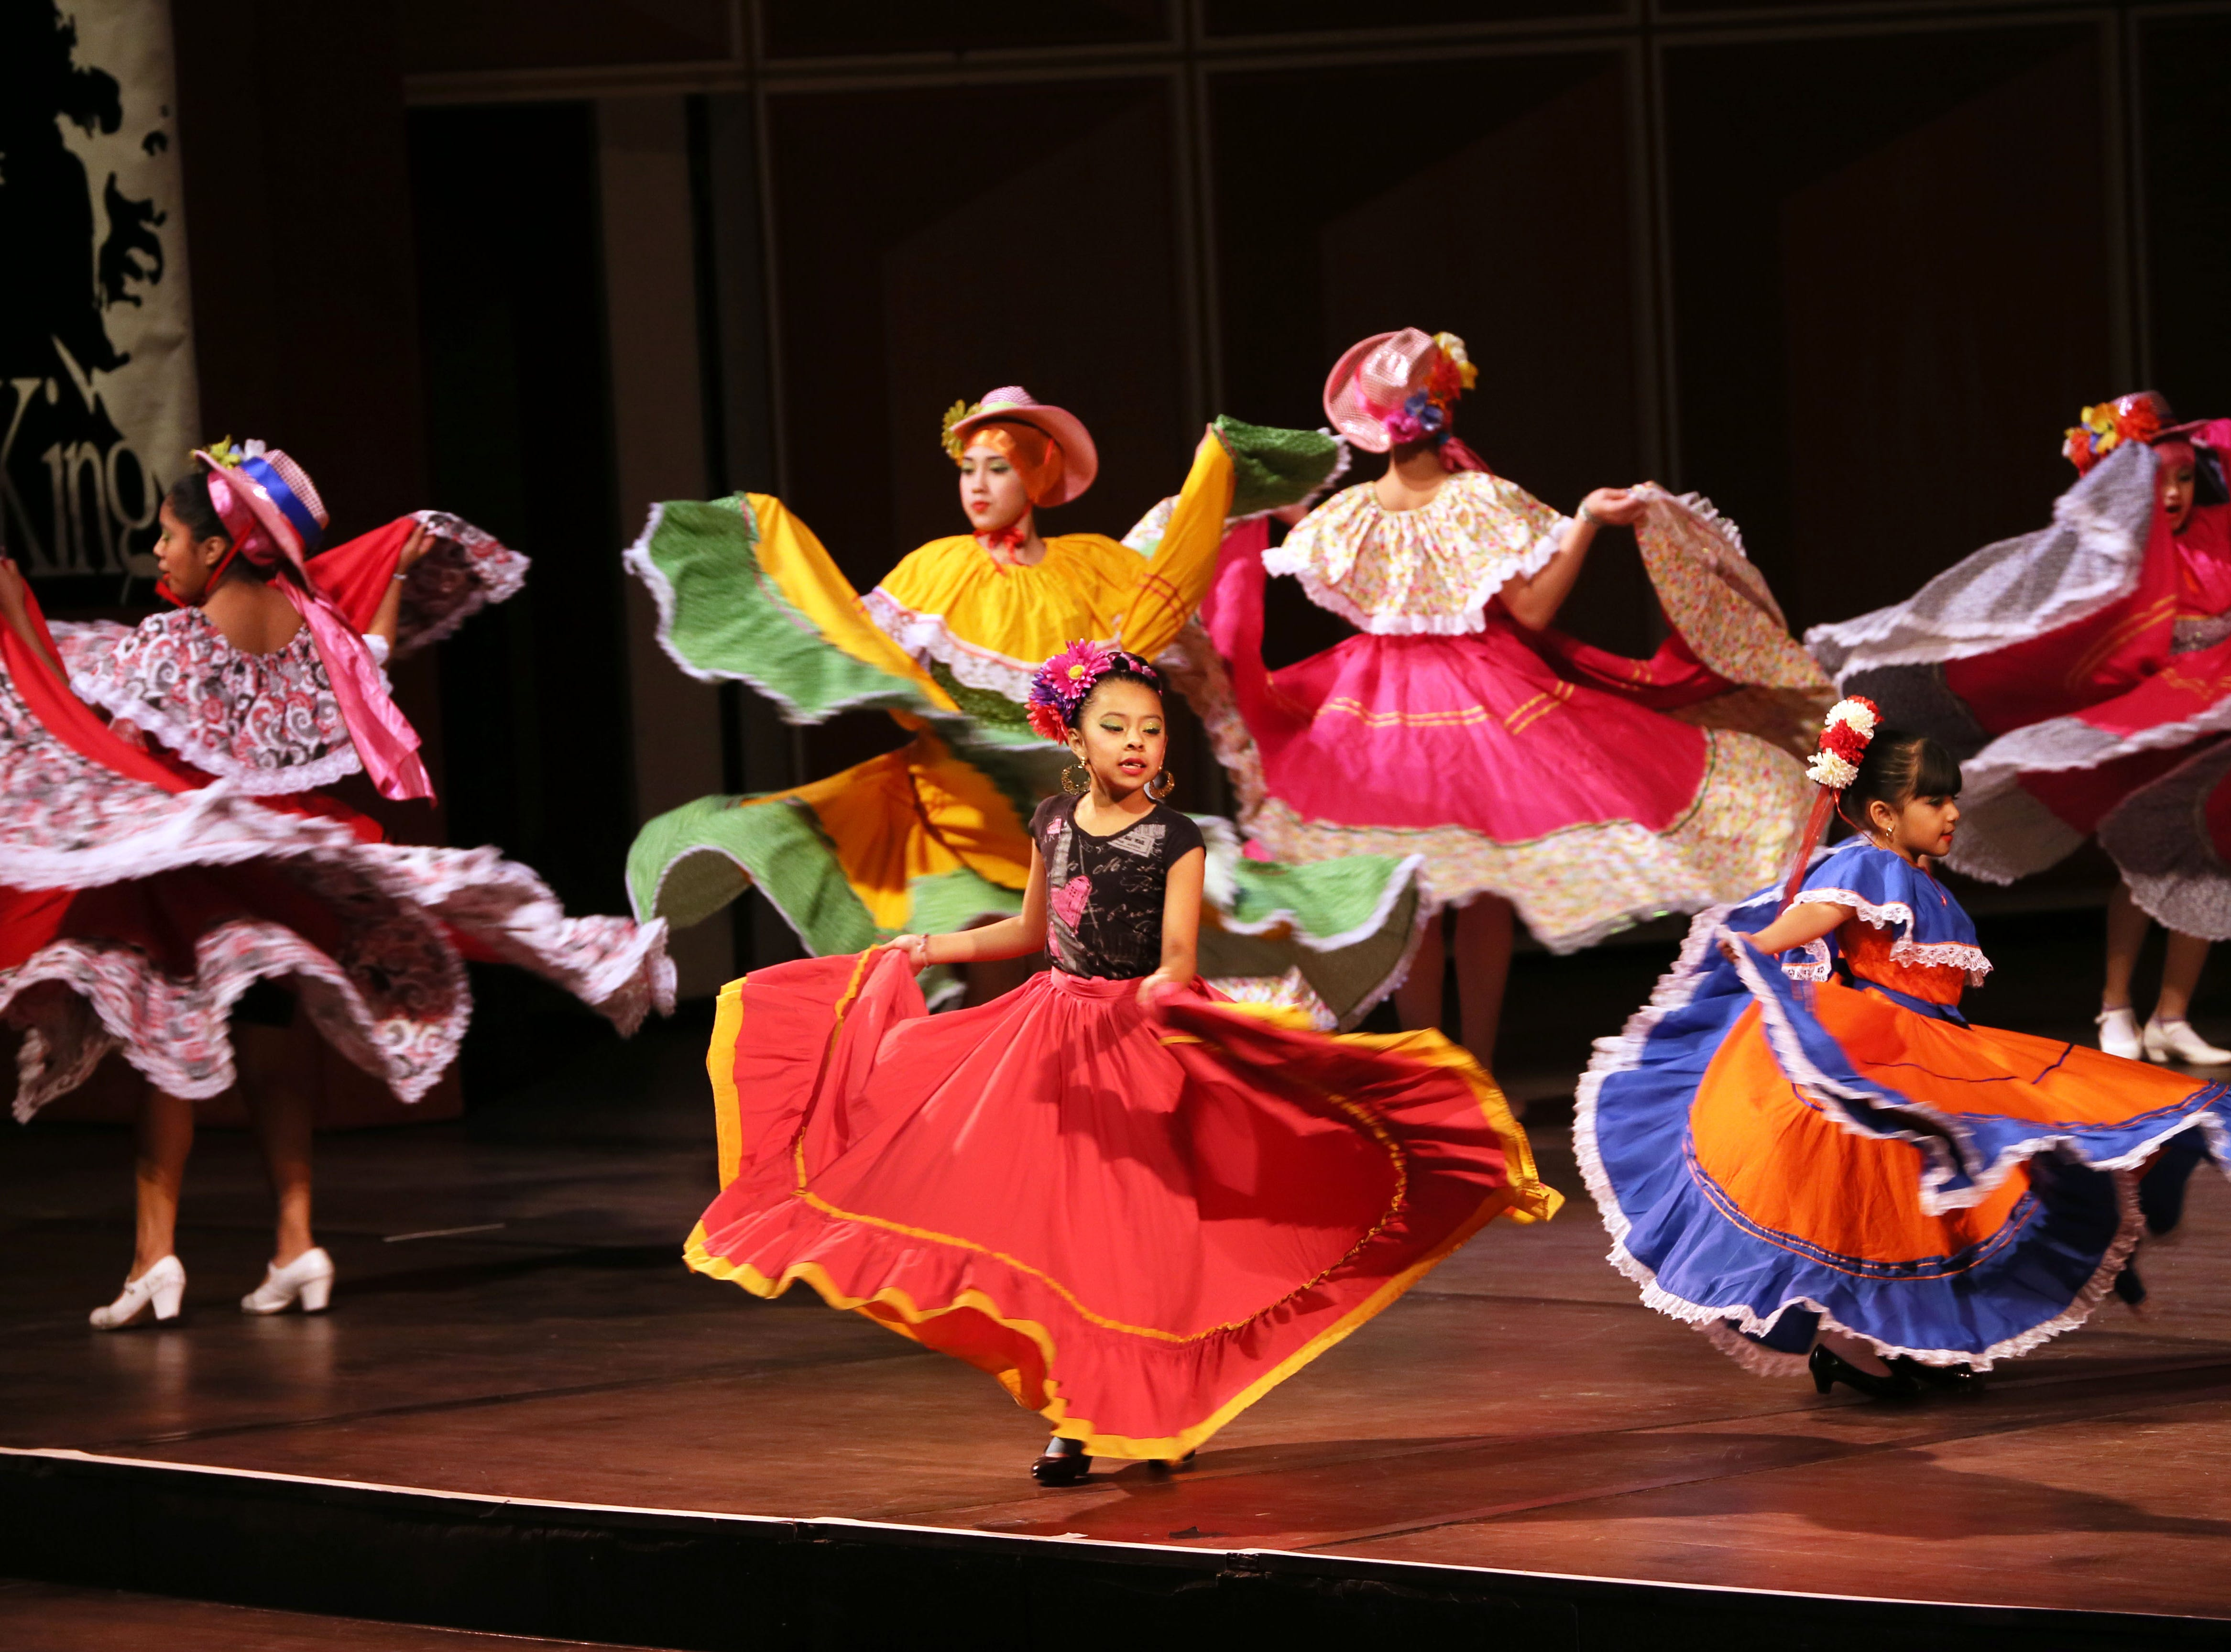 January 17, 2016 Photograph from the Dr. Martin Luther King, Jr. Birthday Celebration held at the Marcus Center for the Performing Arts in Milwaukee. Members of the Ballet Folklorico de Hayes CLC perform during the program. MICHAEL SEARS/MSEARS@JOURNALSENTINEL.COM